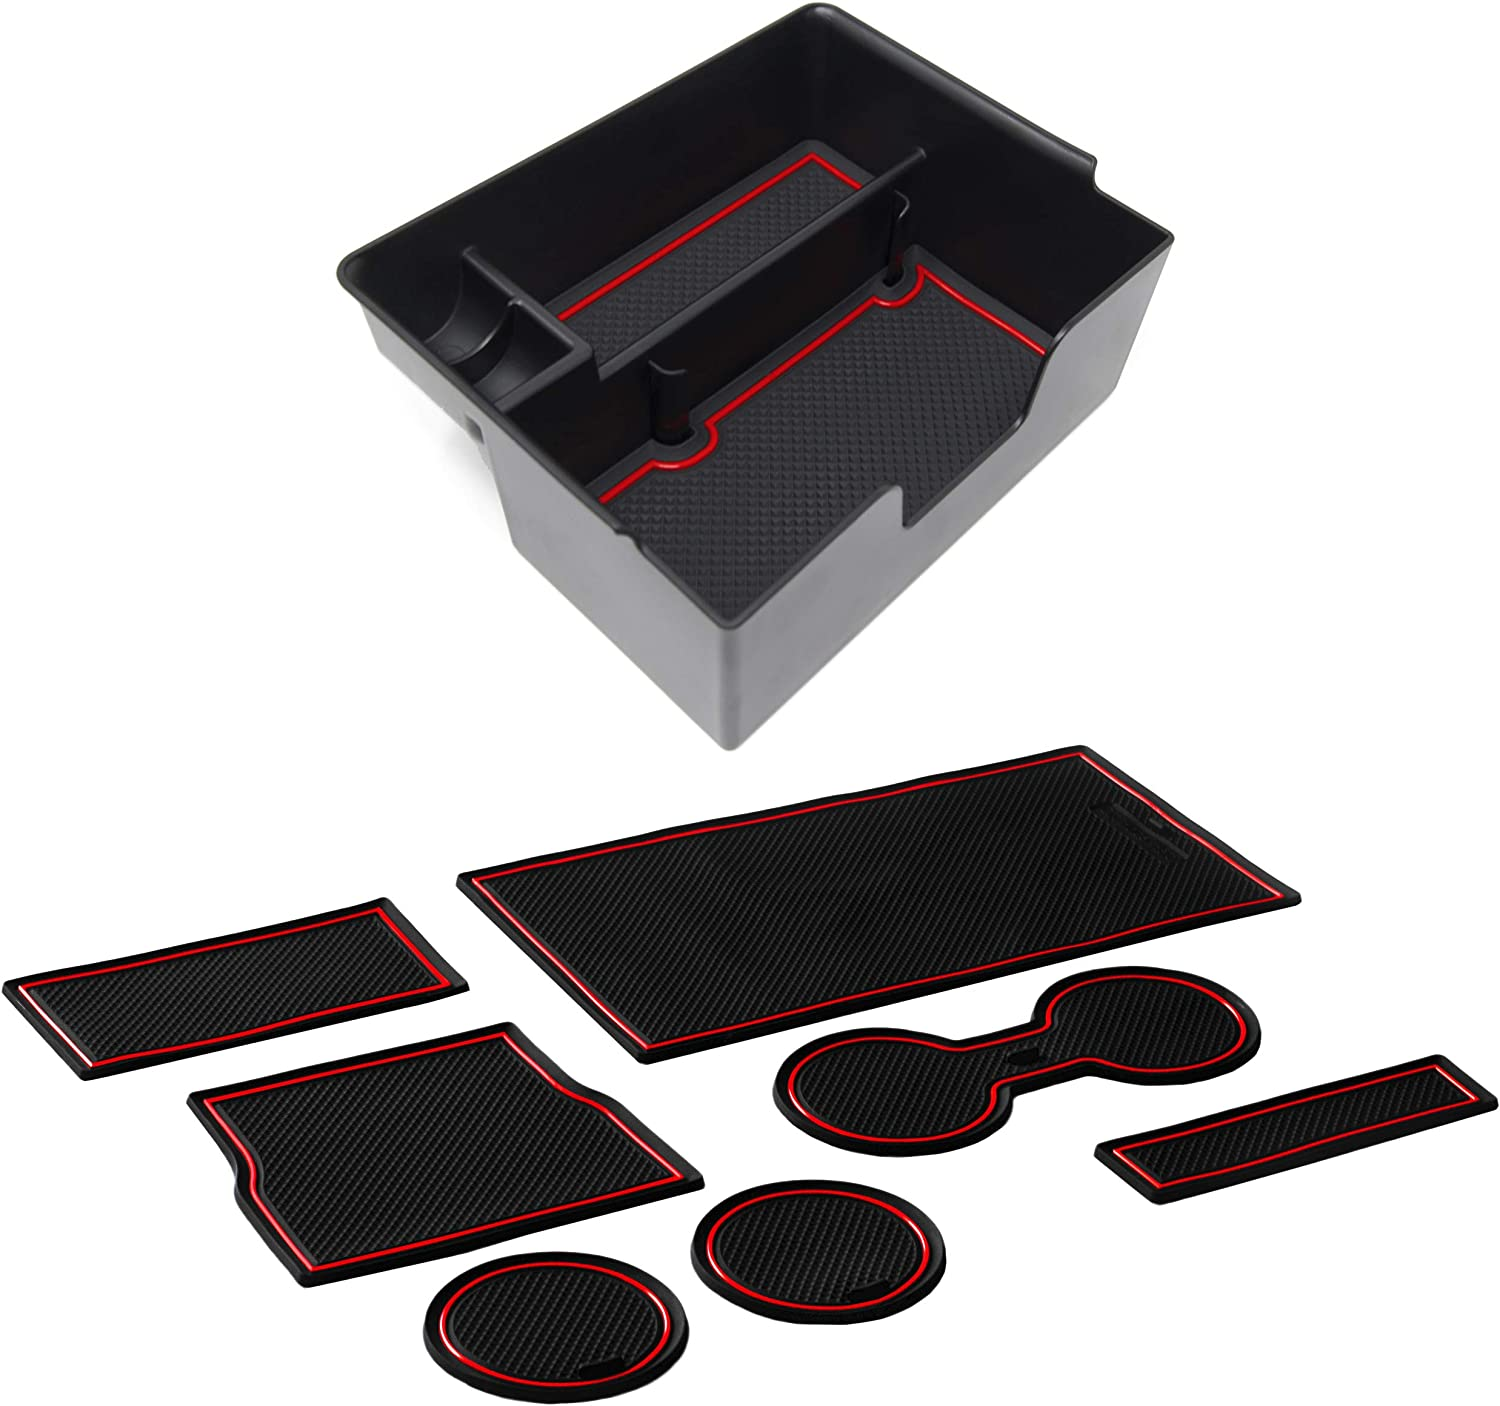 Red Trim CupHolderHero for Tesla Model 3 2017-2020 Custom Fit Center Console Organizer Tray with Deep Pocket and Premium Cup Holder Liners Kit 10-pc Bundle